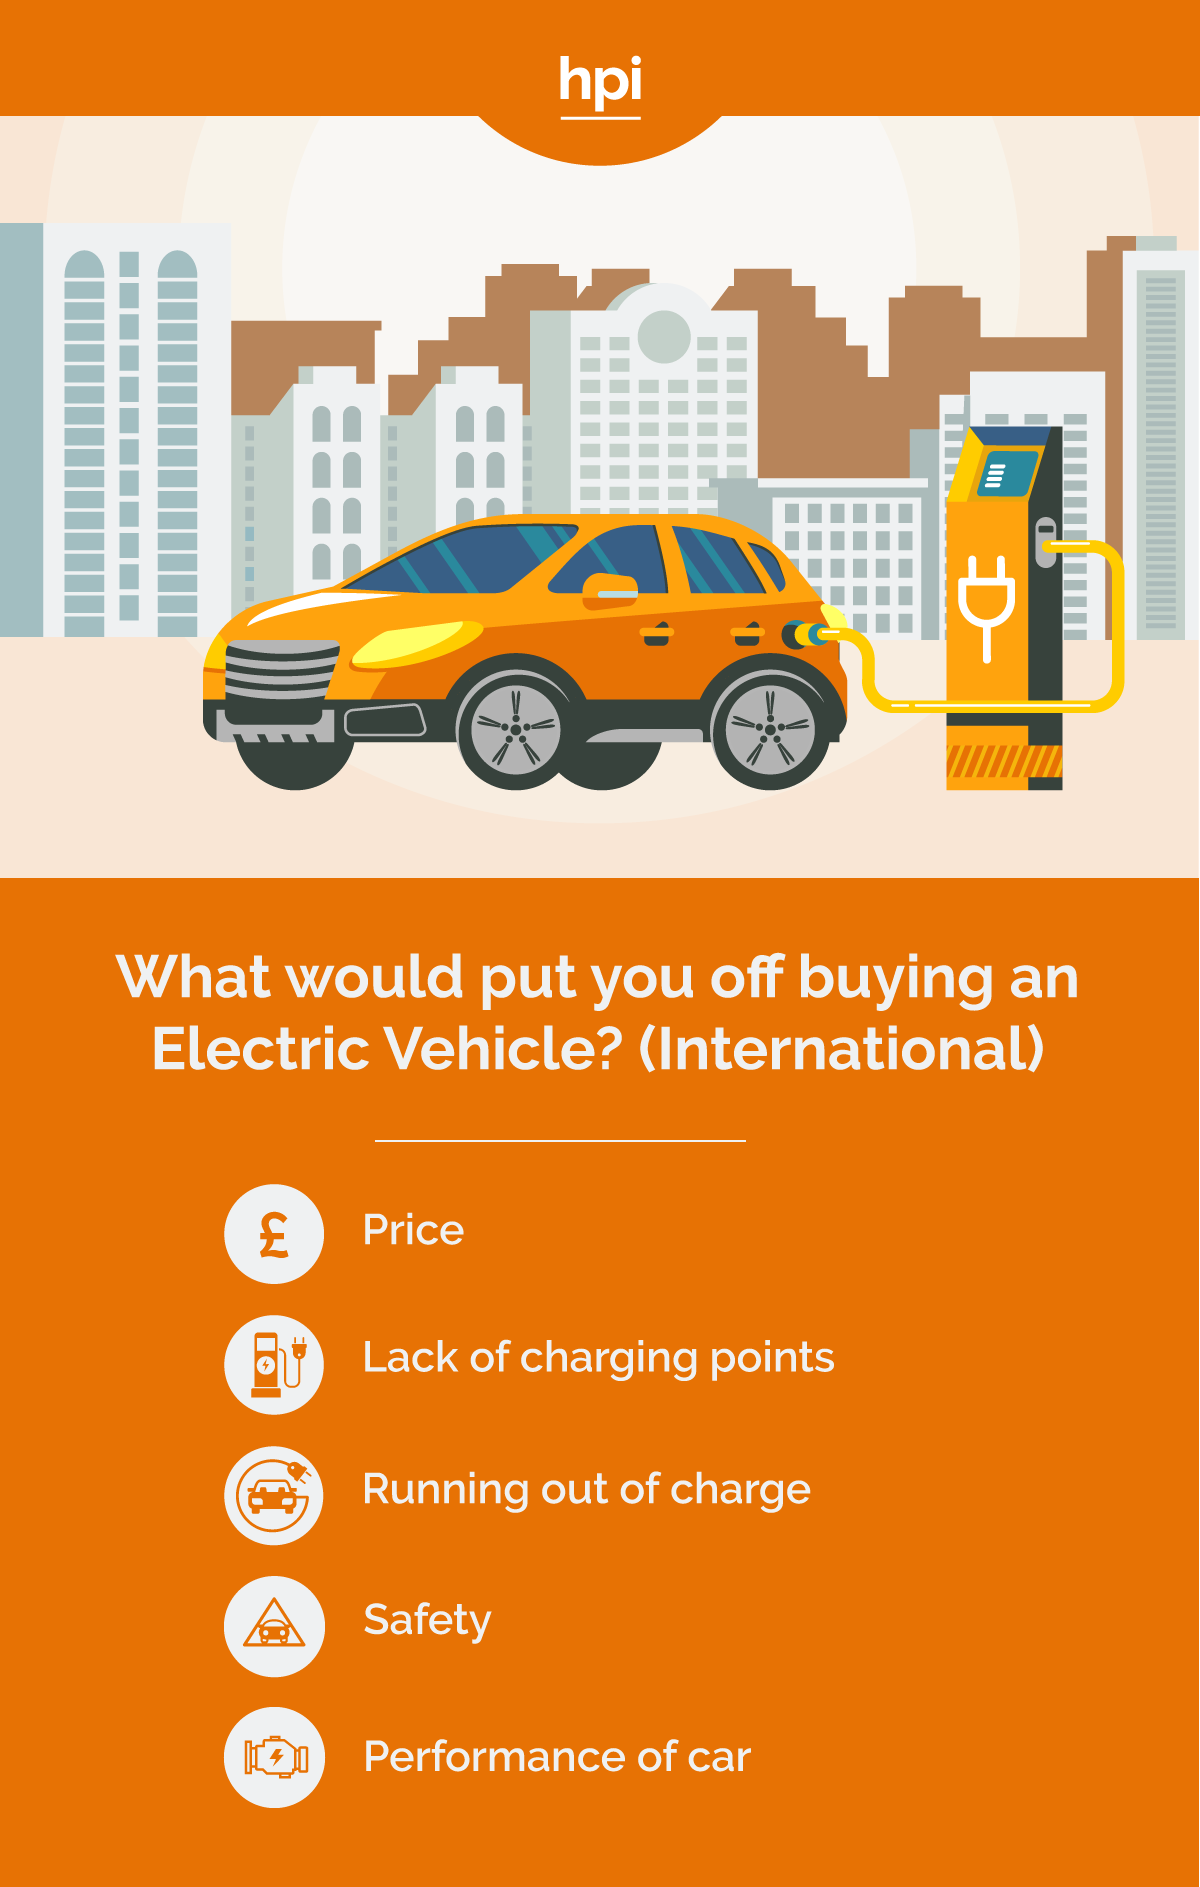 Reasons Not to Buy an Electric Car International